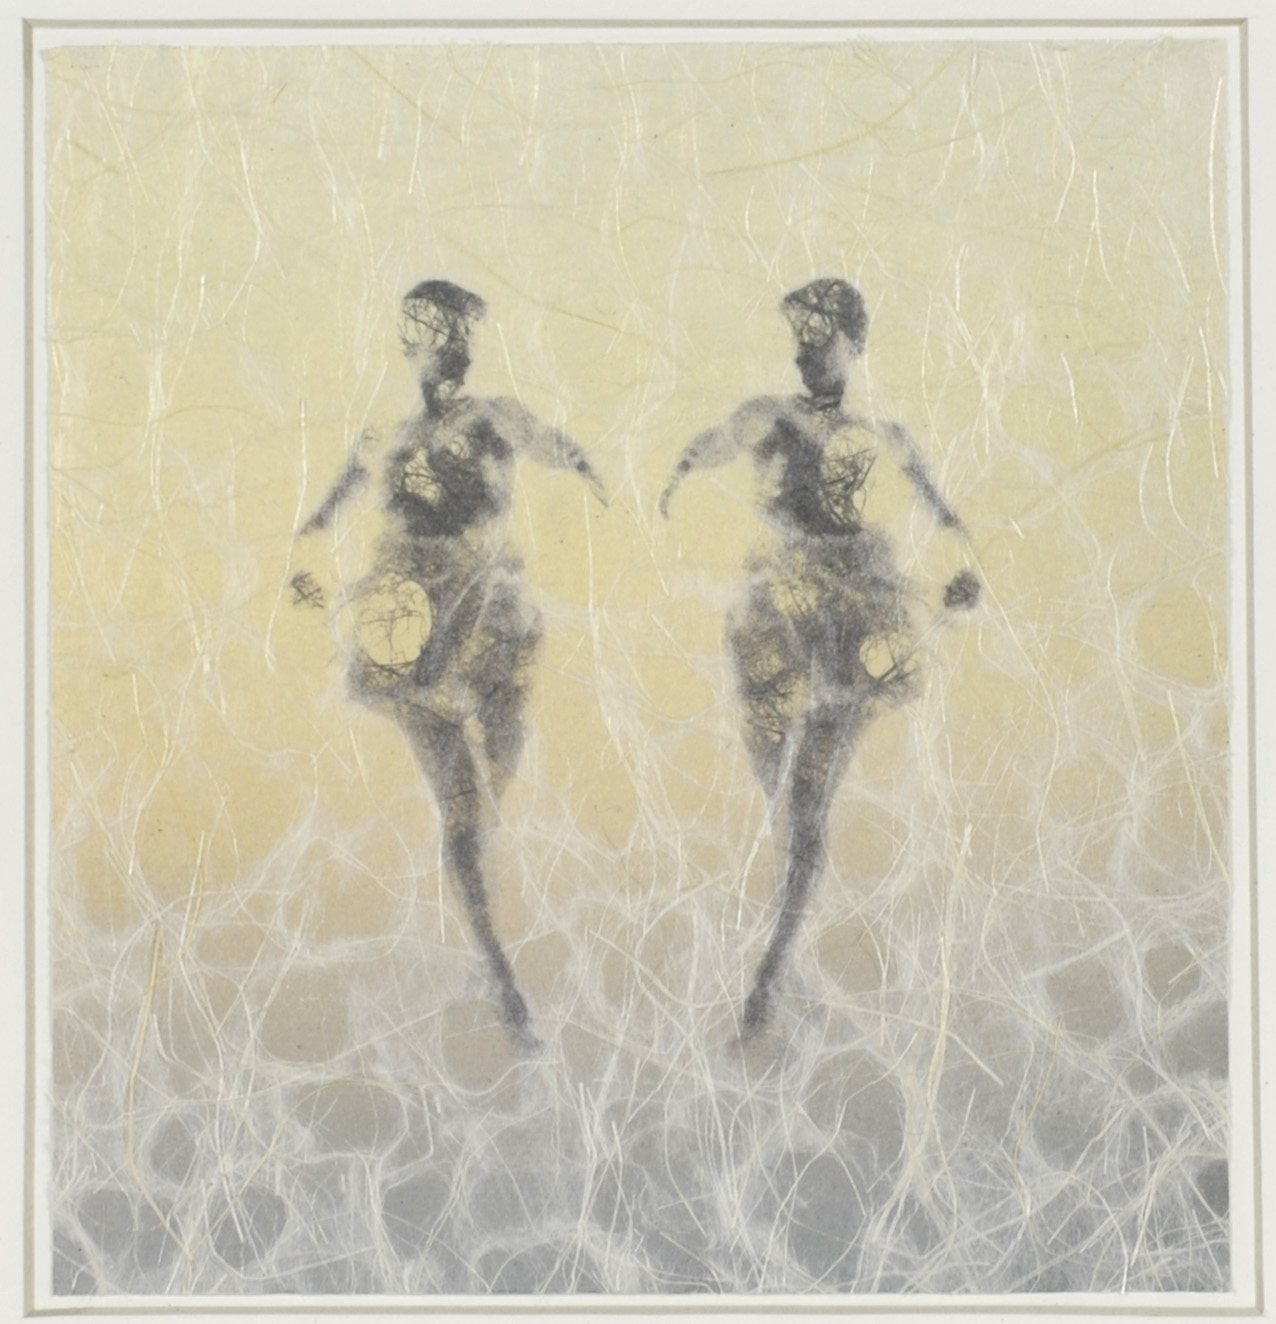 Elizabeth Woodward     An Audrey Variation , 2012  Photographic inkjet print on handmade paper